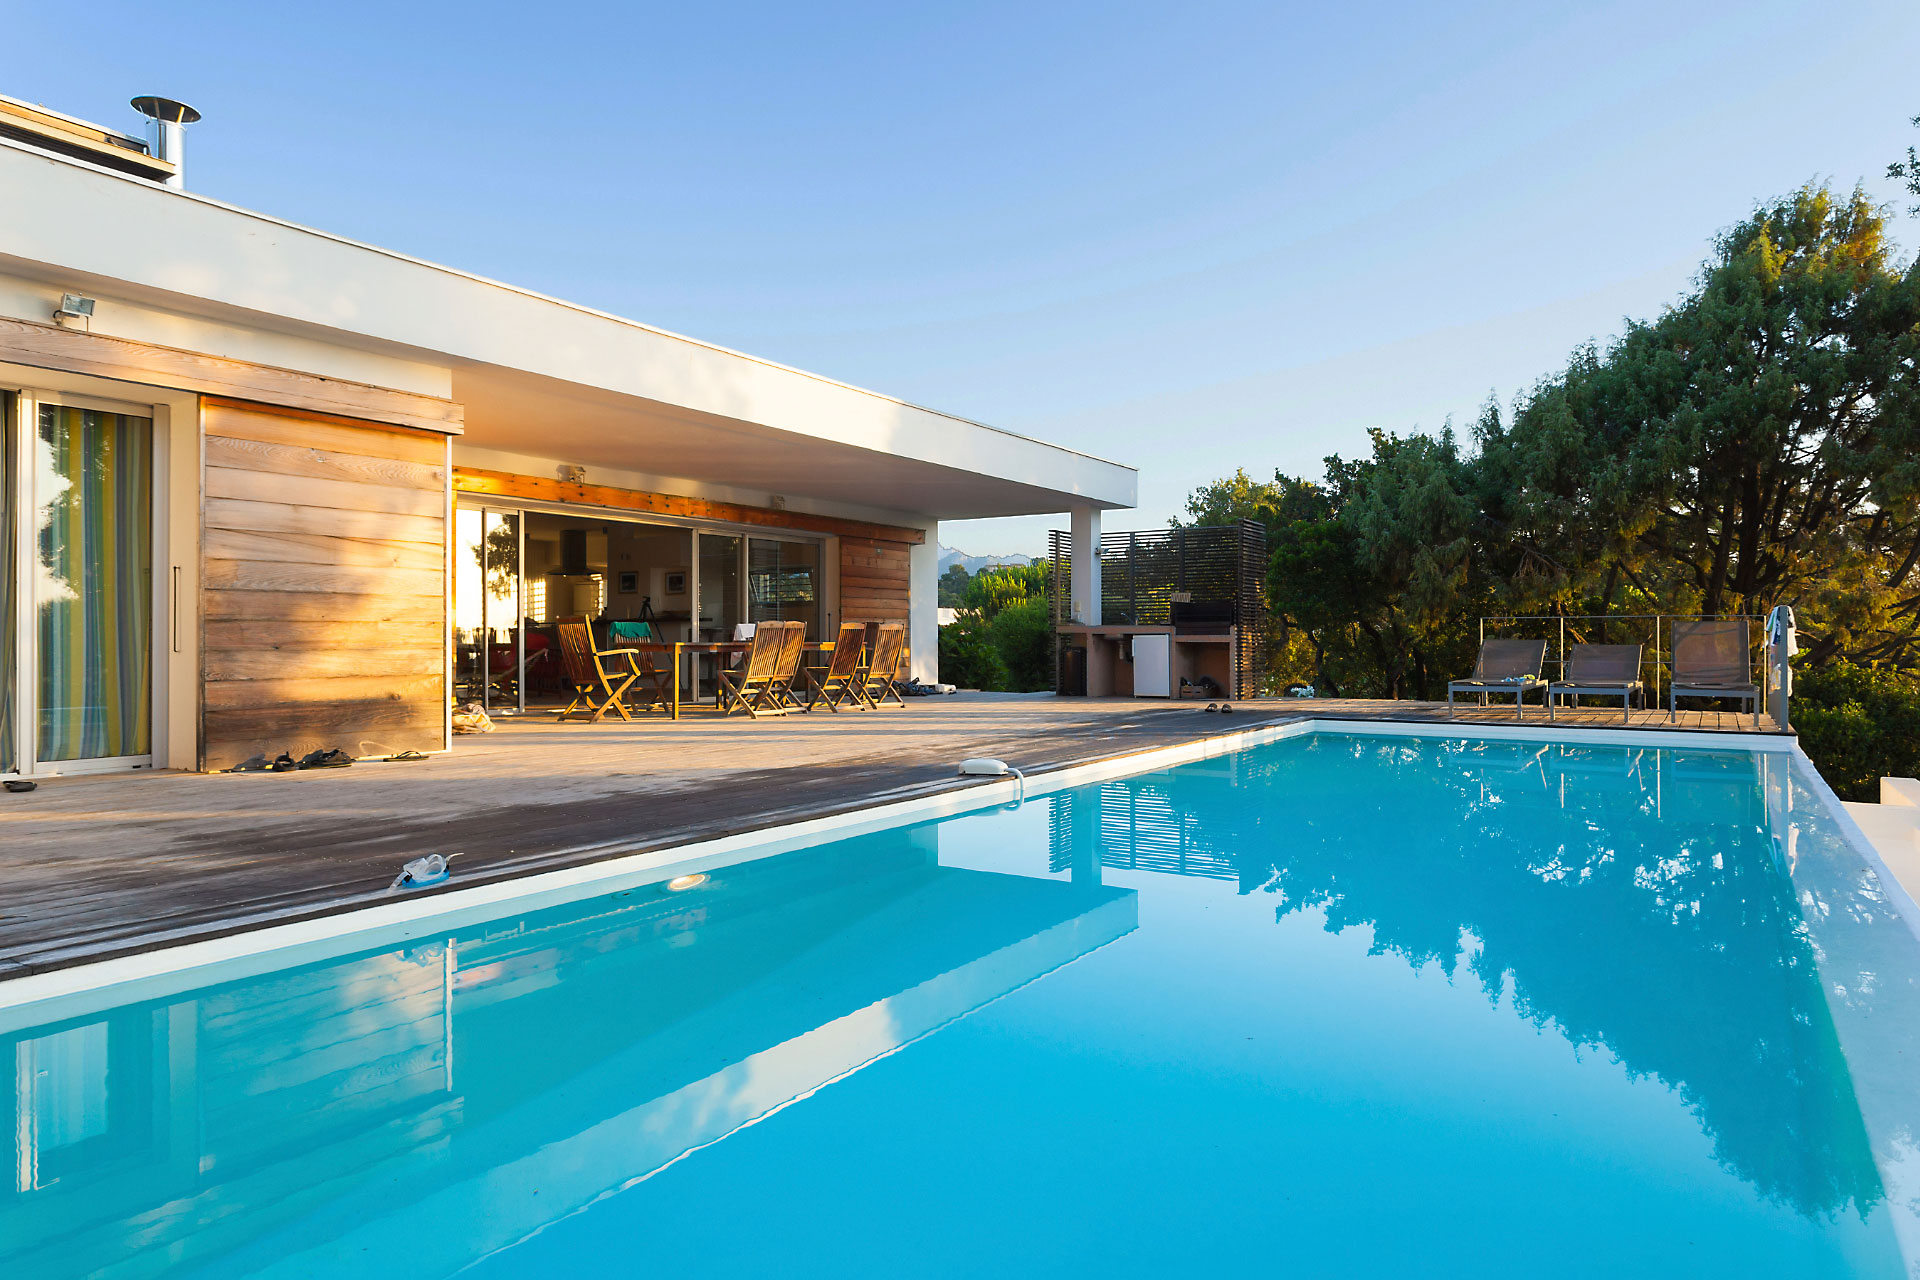 Tekinspect building pest pool inspections sydney - Residential swimming pool inspection ...